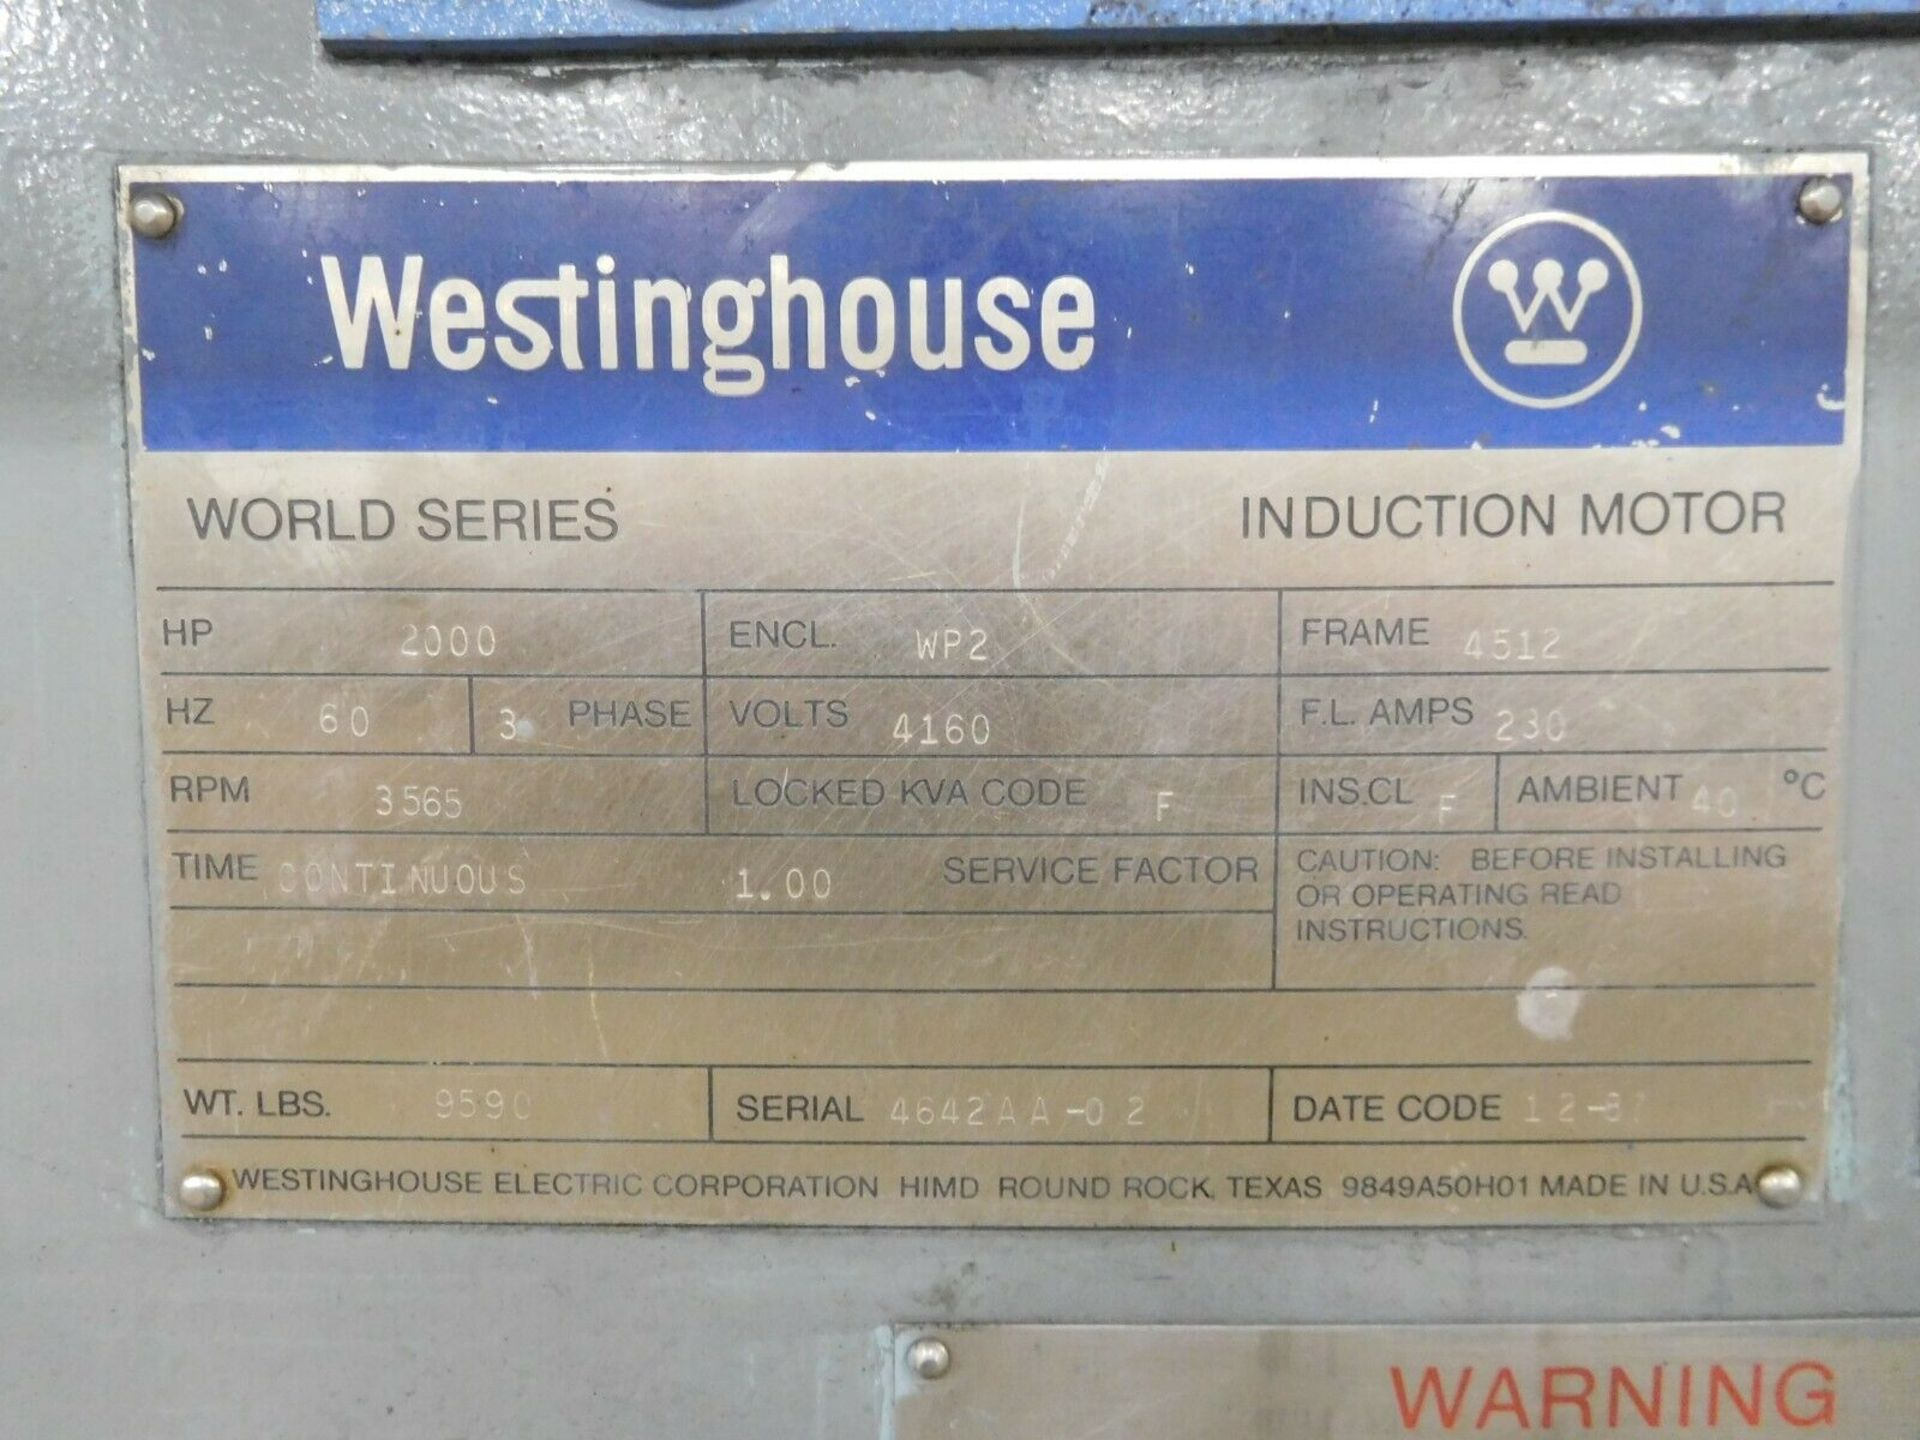 Westinghouse World Series Induction Motor. 2000 HP. 3 Ph. 3565 RPM. 4160 V. 60 Hz. 4512. - Image 5 of 5